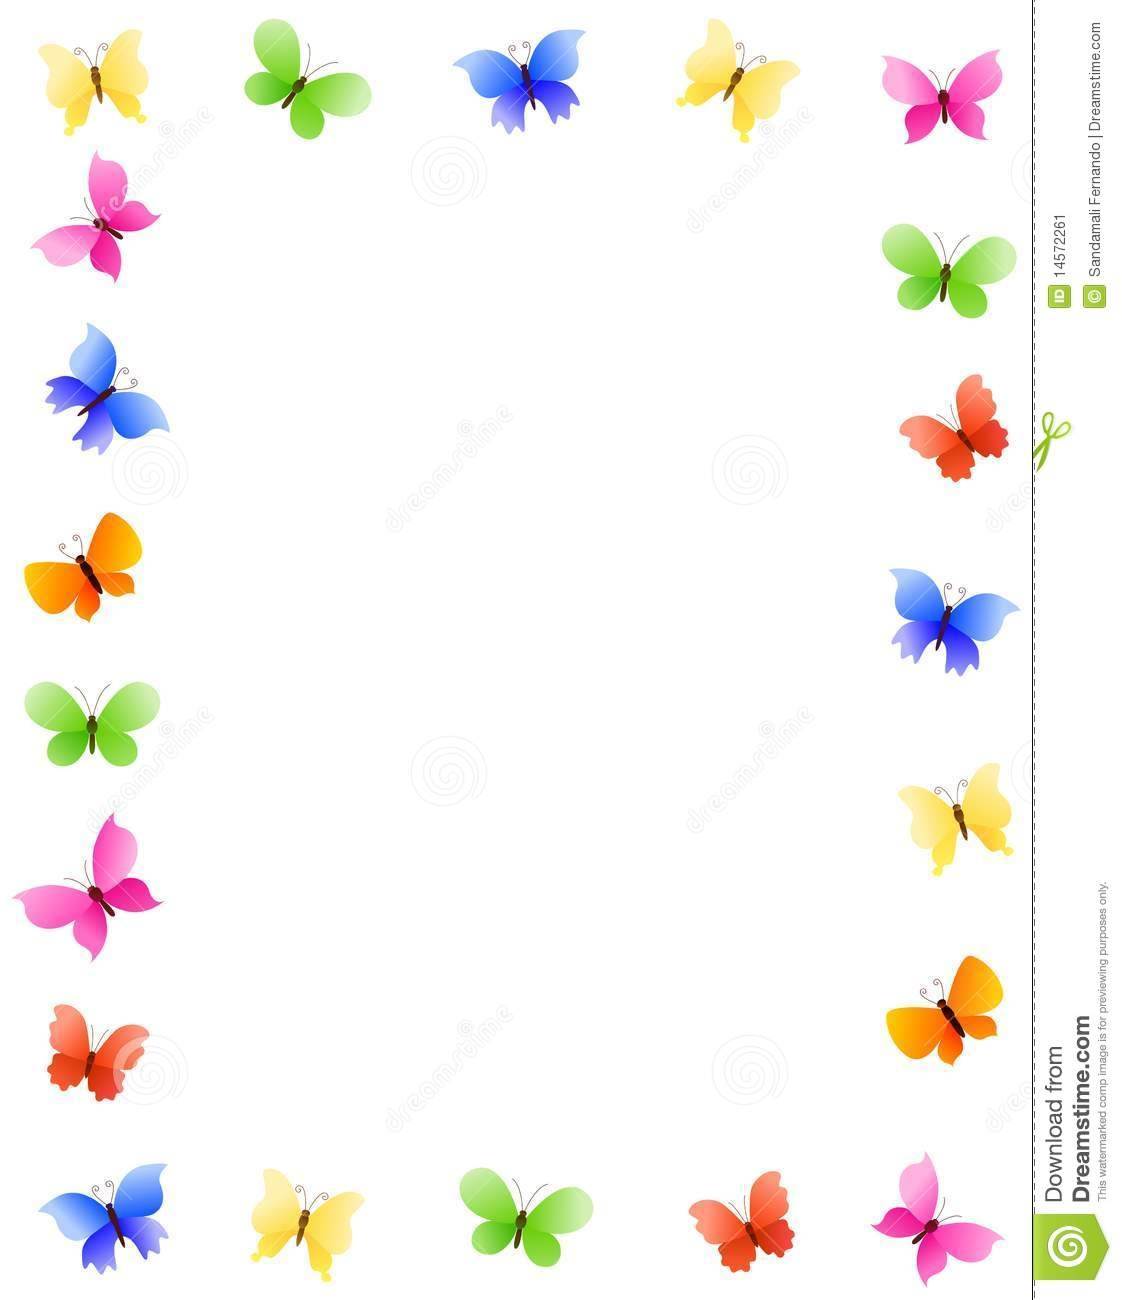 Addition clipart border. Butterfly station